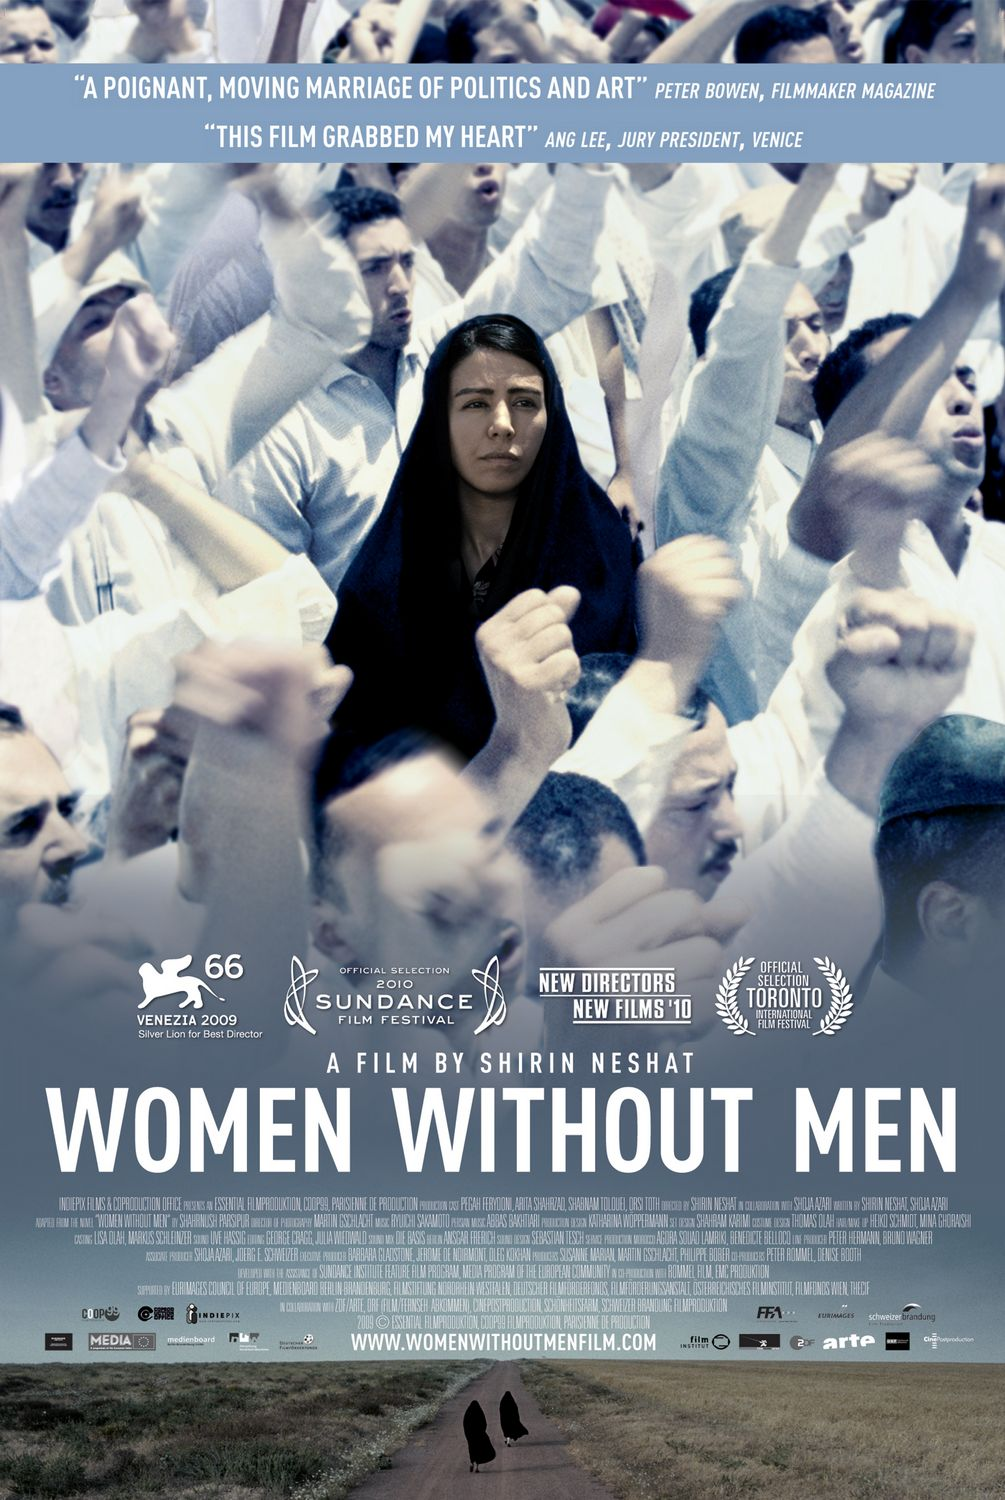 Women Without Men, an old movie that explores the limitations of women's lives in Iran (Photo Public domain)